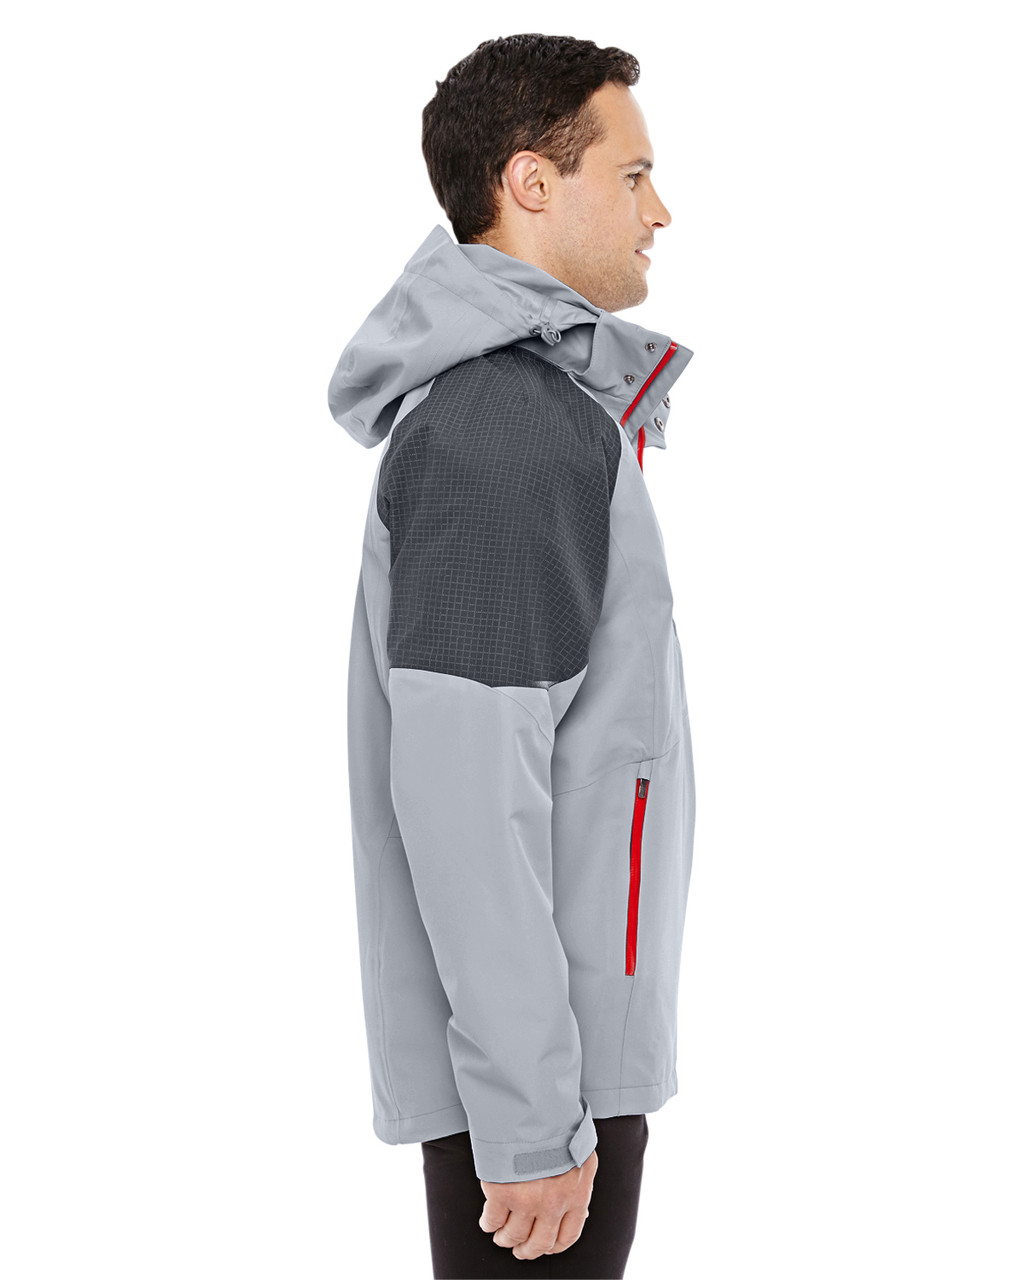 Platinum/Carbon-side 88808 North End Sport Red Impulse Interactive Seam-Sealed Shell Jacket